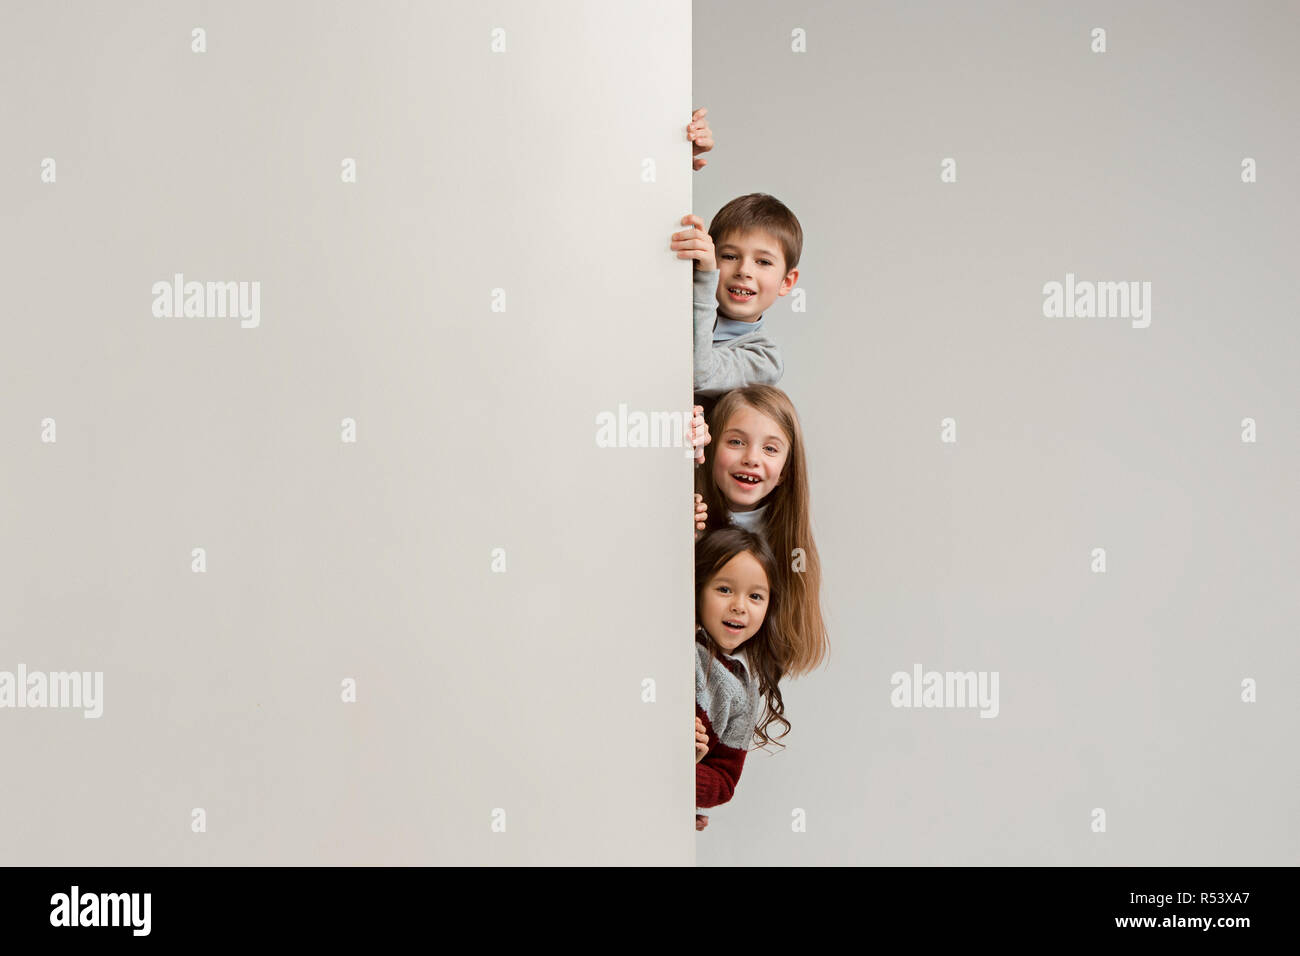 ab40f37d37 Banner with a surprised children peeking at the edge with copyspace. The  portrait of cute little kids boy and girls looking at camera against white  studio ...